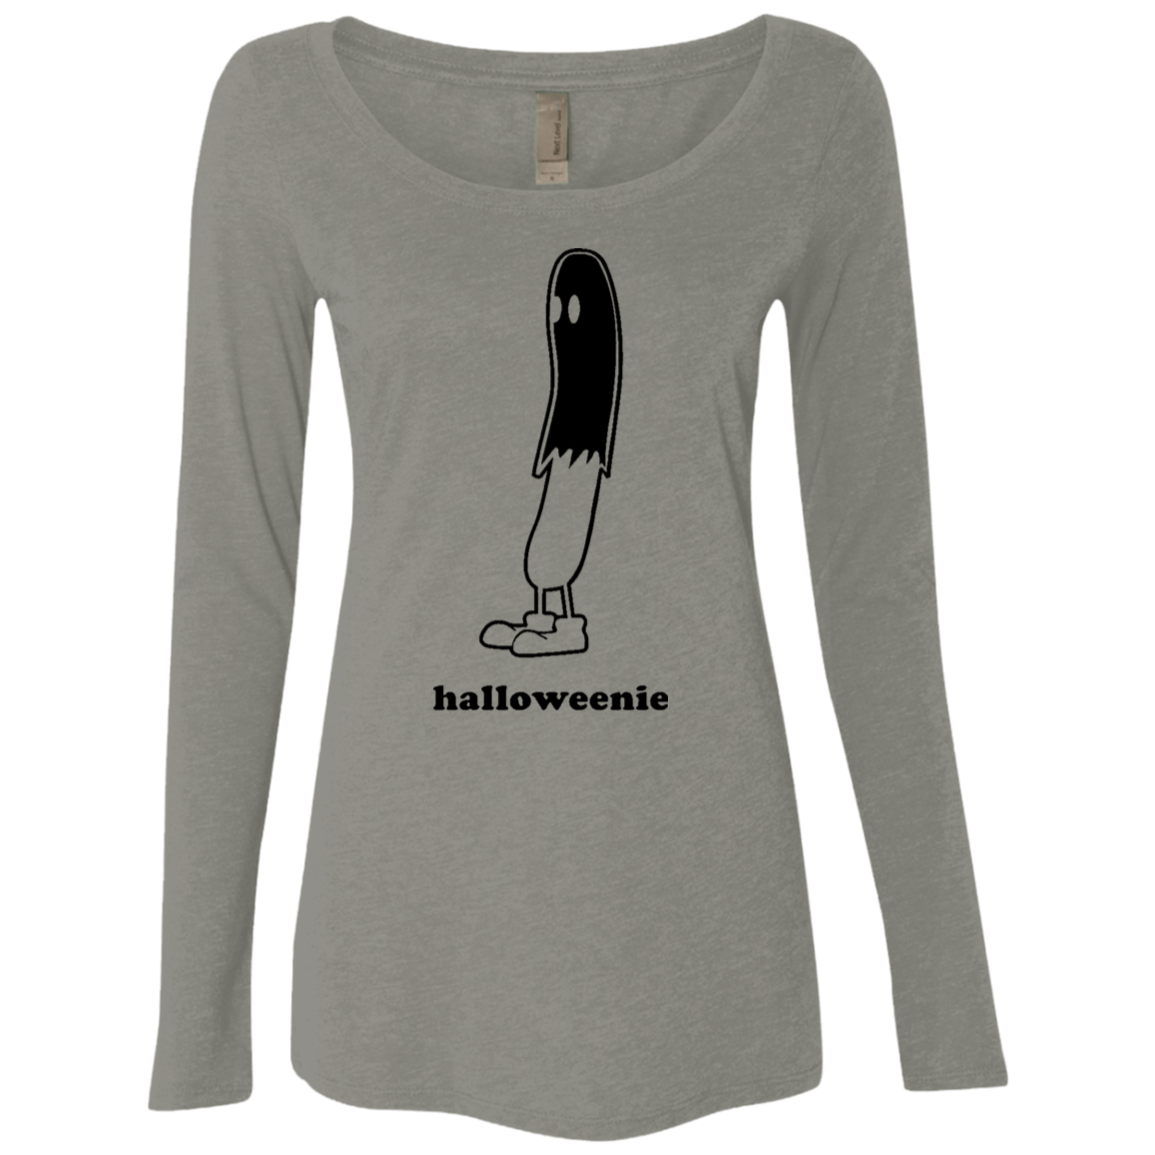 Halloweenie Women's Long Sleeve Tee